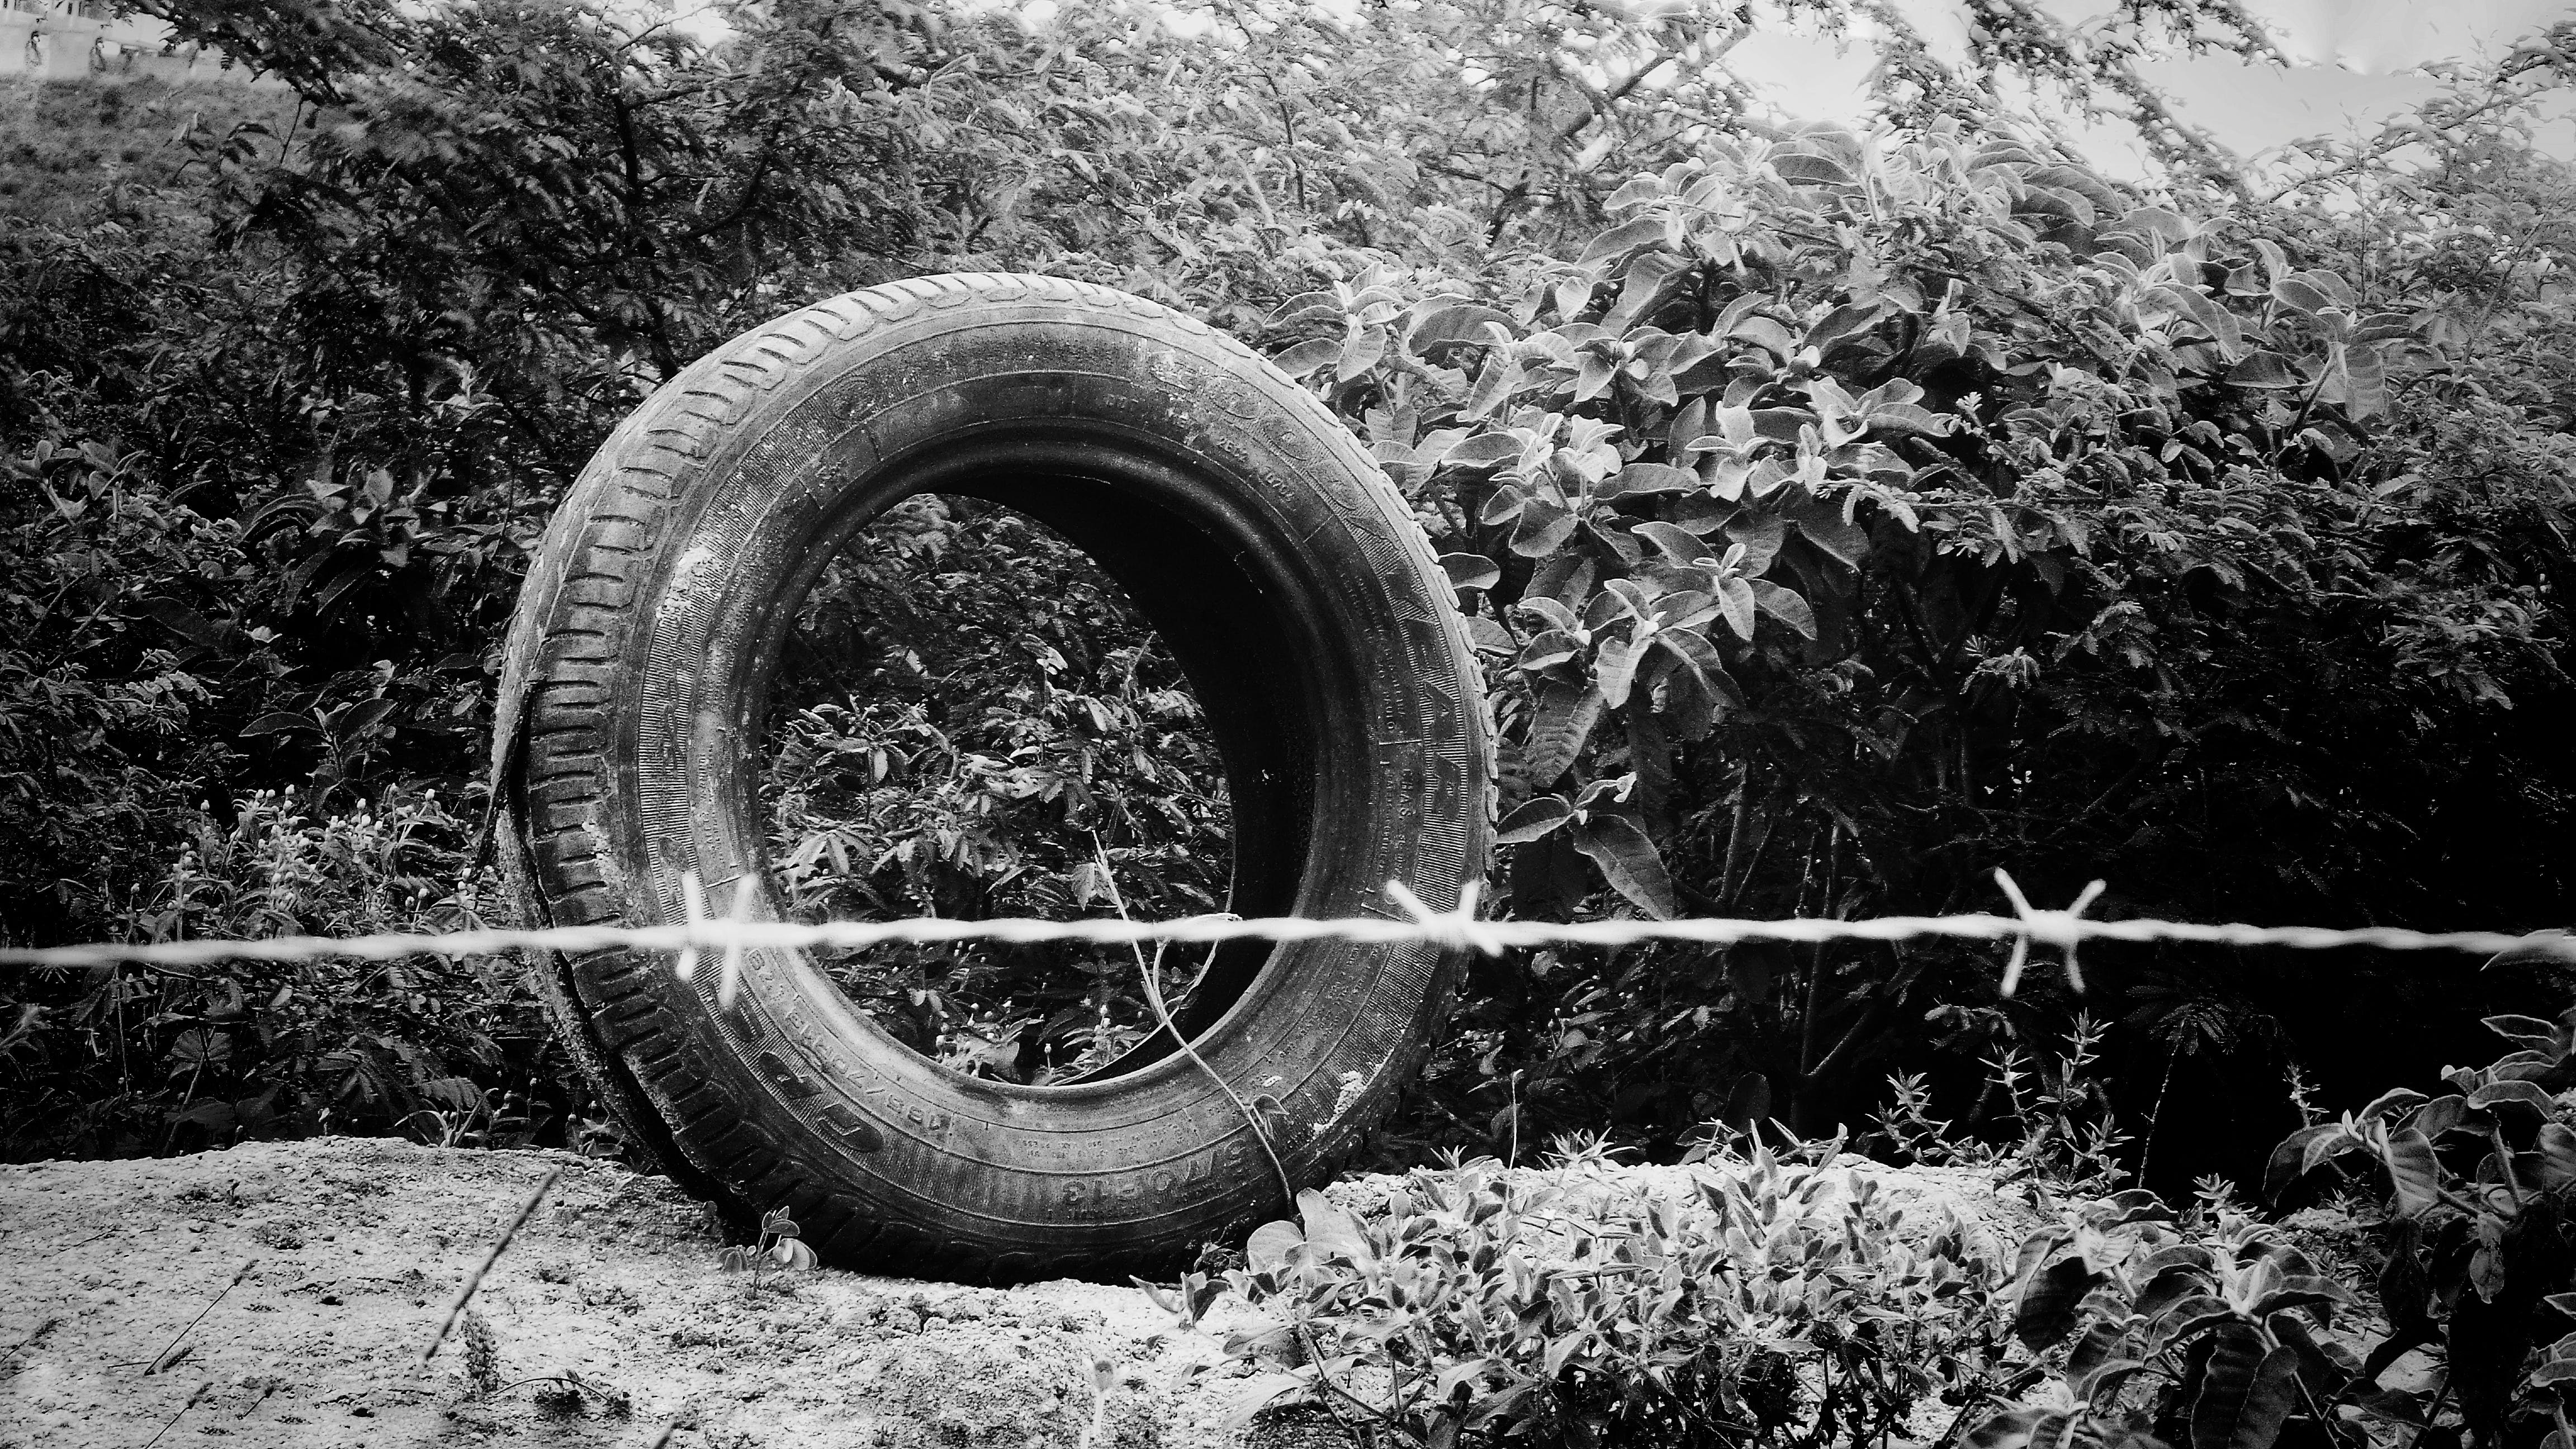 Free stock photo of black and white, flat tire, old tire, pollution